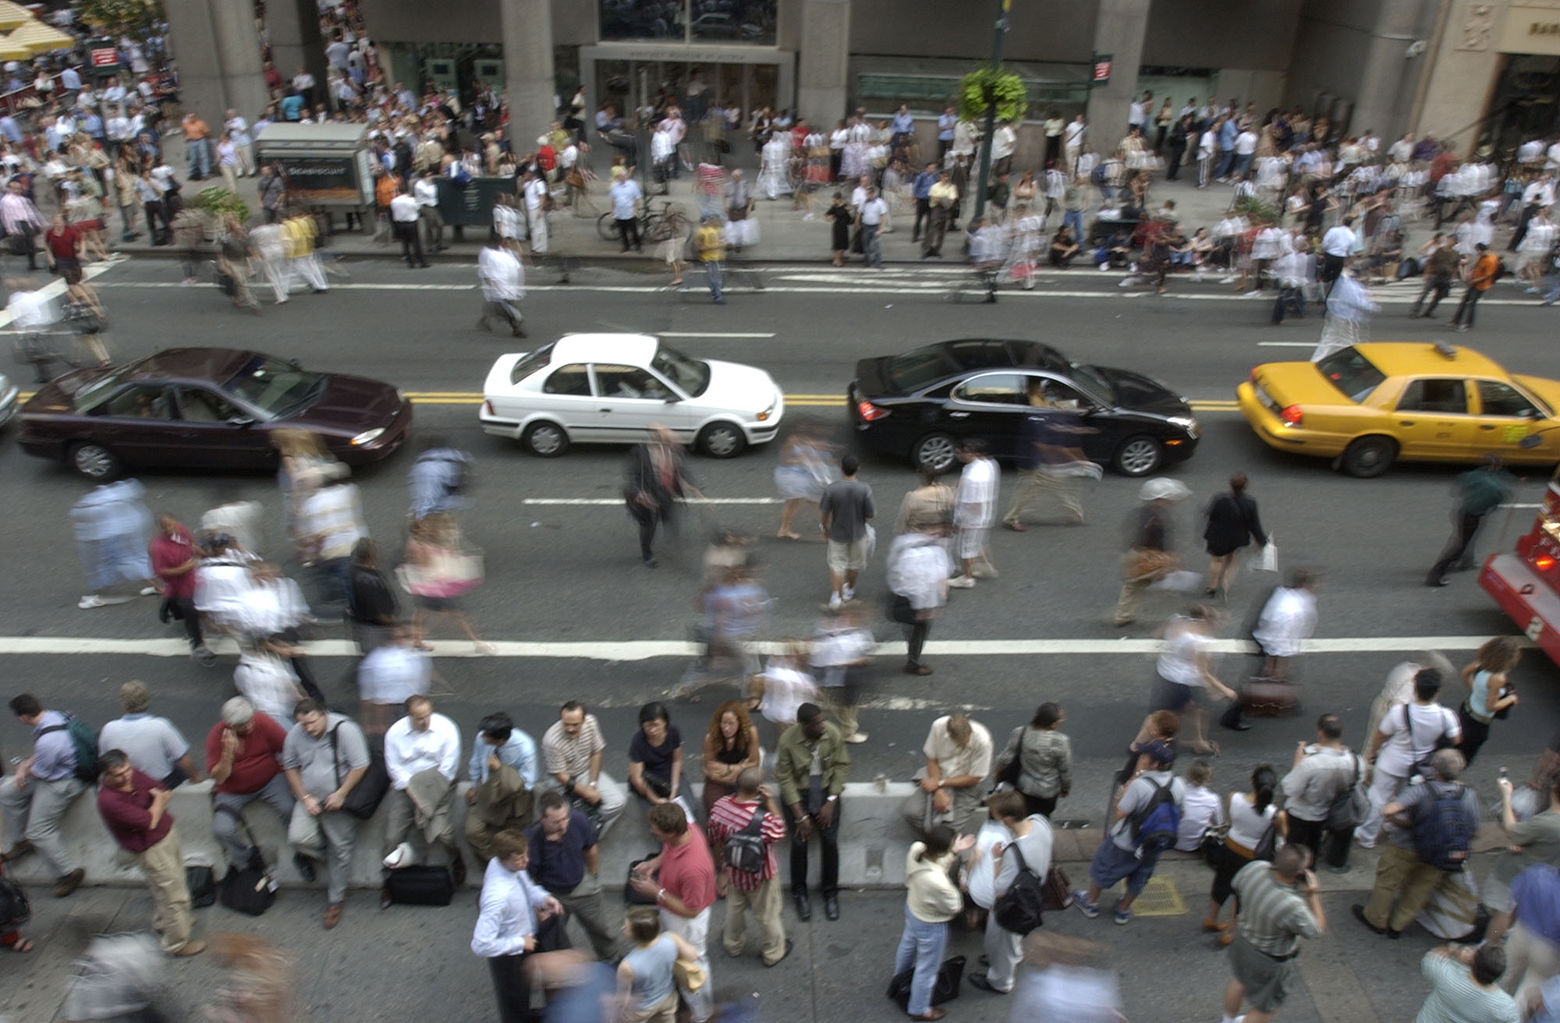 Crowds of people pour onto 42nd Street near Grand Central Station in New York City after a power outage forced them from  surrounding buildings Thursday, Aug. 14, 2003. The outage that hit cities in northeastern United States and Canada, also disrupted cell phone service in New York, the subway system and trains going in and out. (AP Photo/Julie Jacobson)